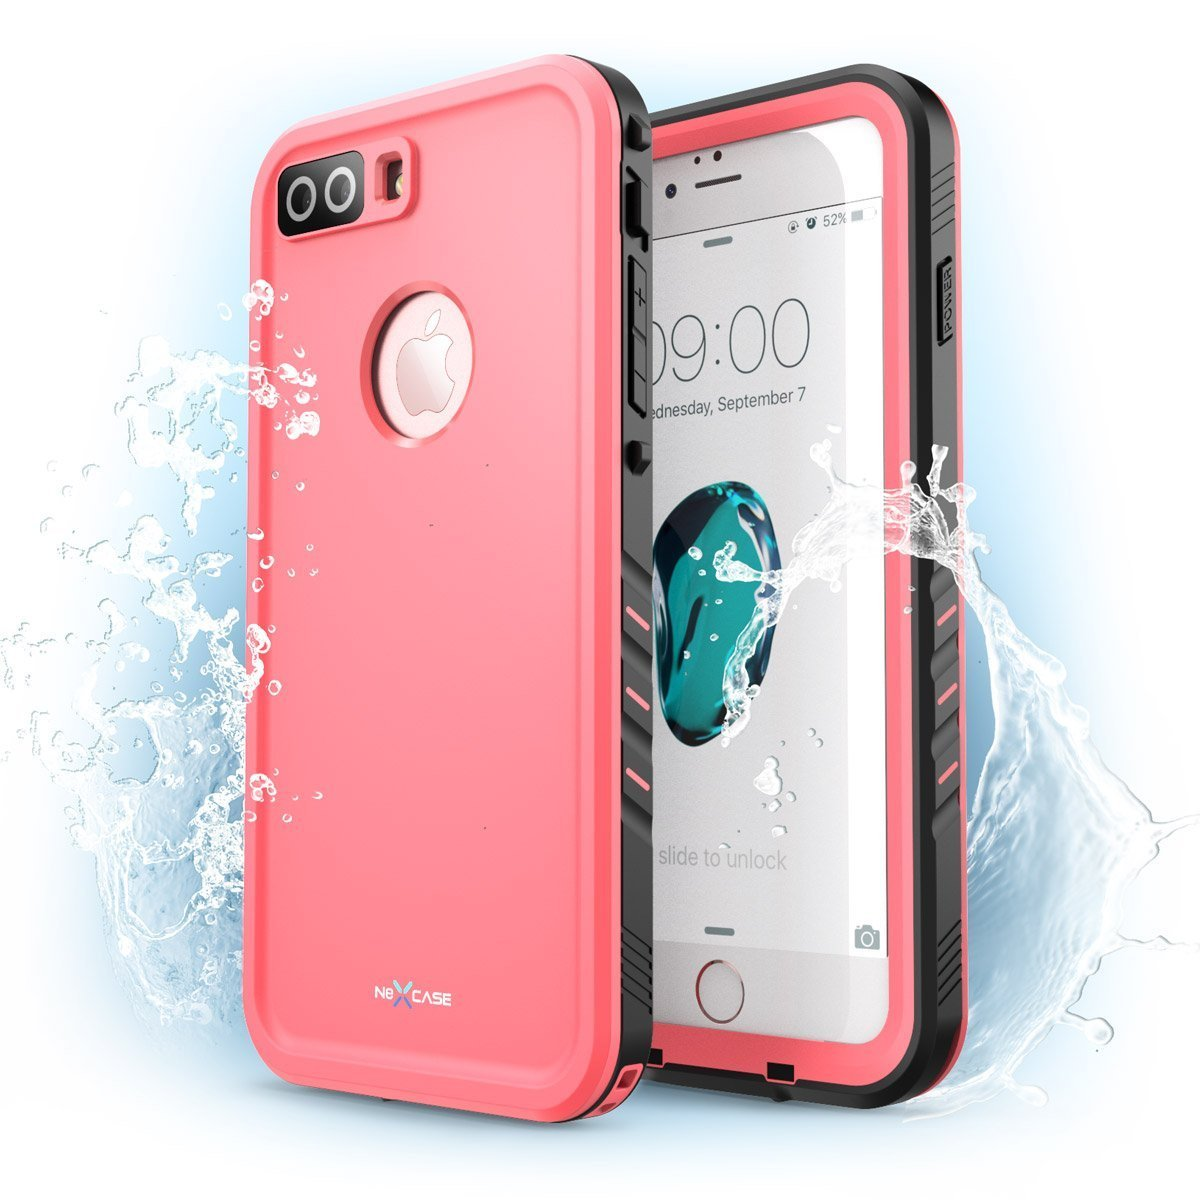 iPhone 7 Plus Case, NexCase Waterproof Full-body Rugged Case with Built-in Screen Protector for Apple iPhone 7 Plus 5.5 inch 2016 Release (Pink) by NexCase